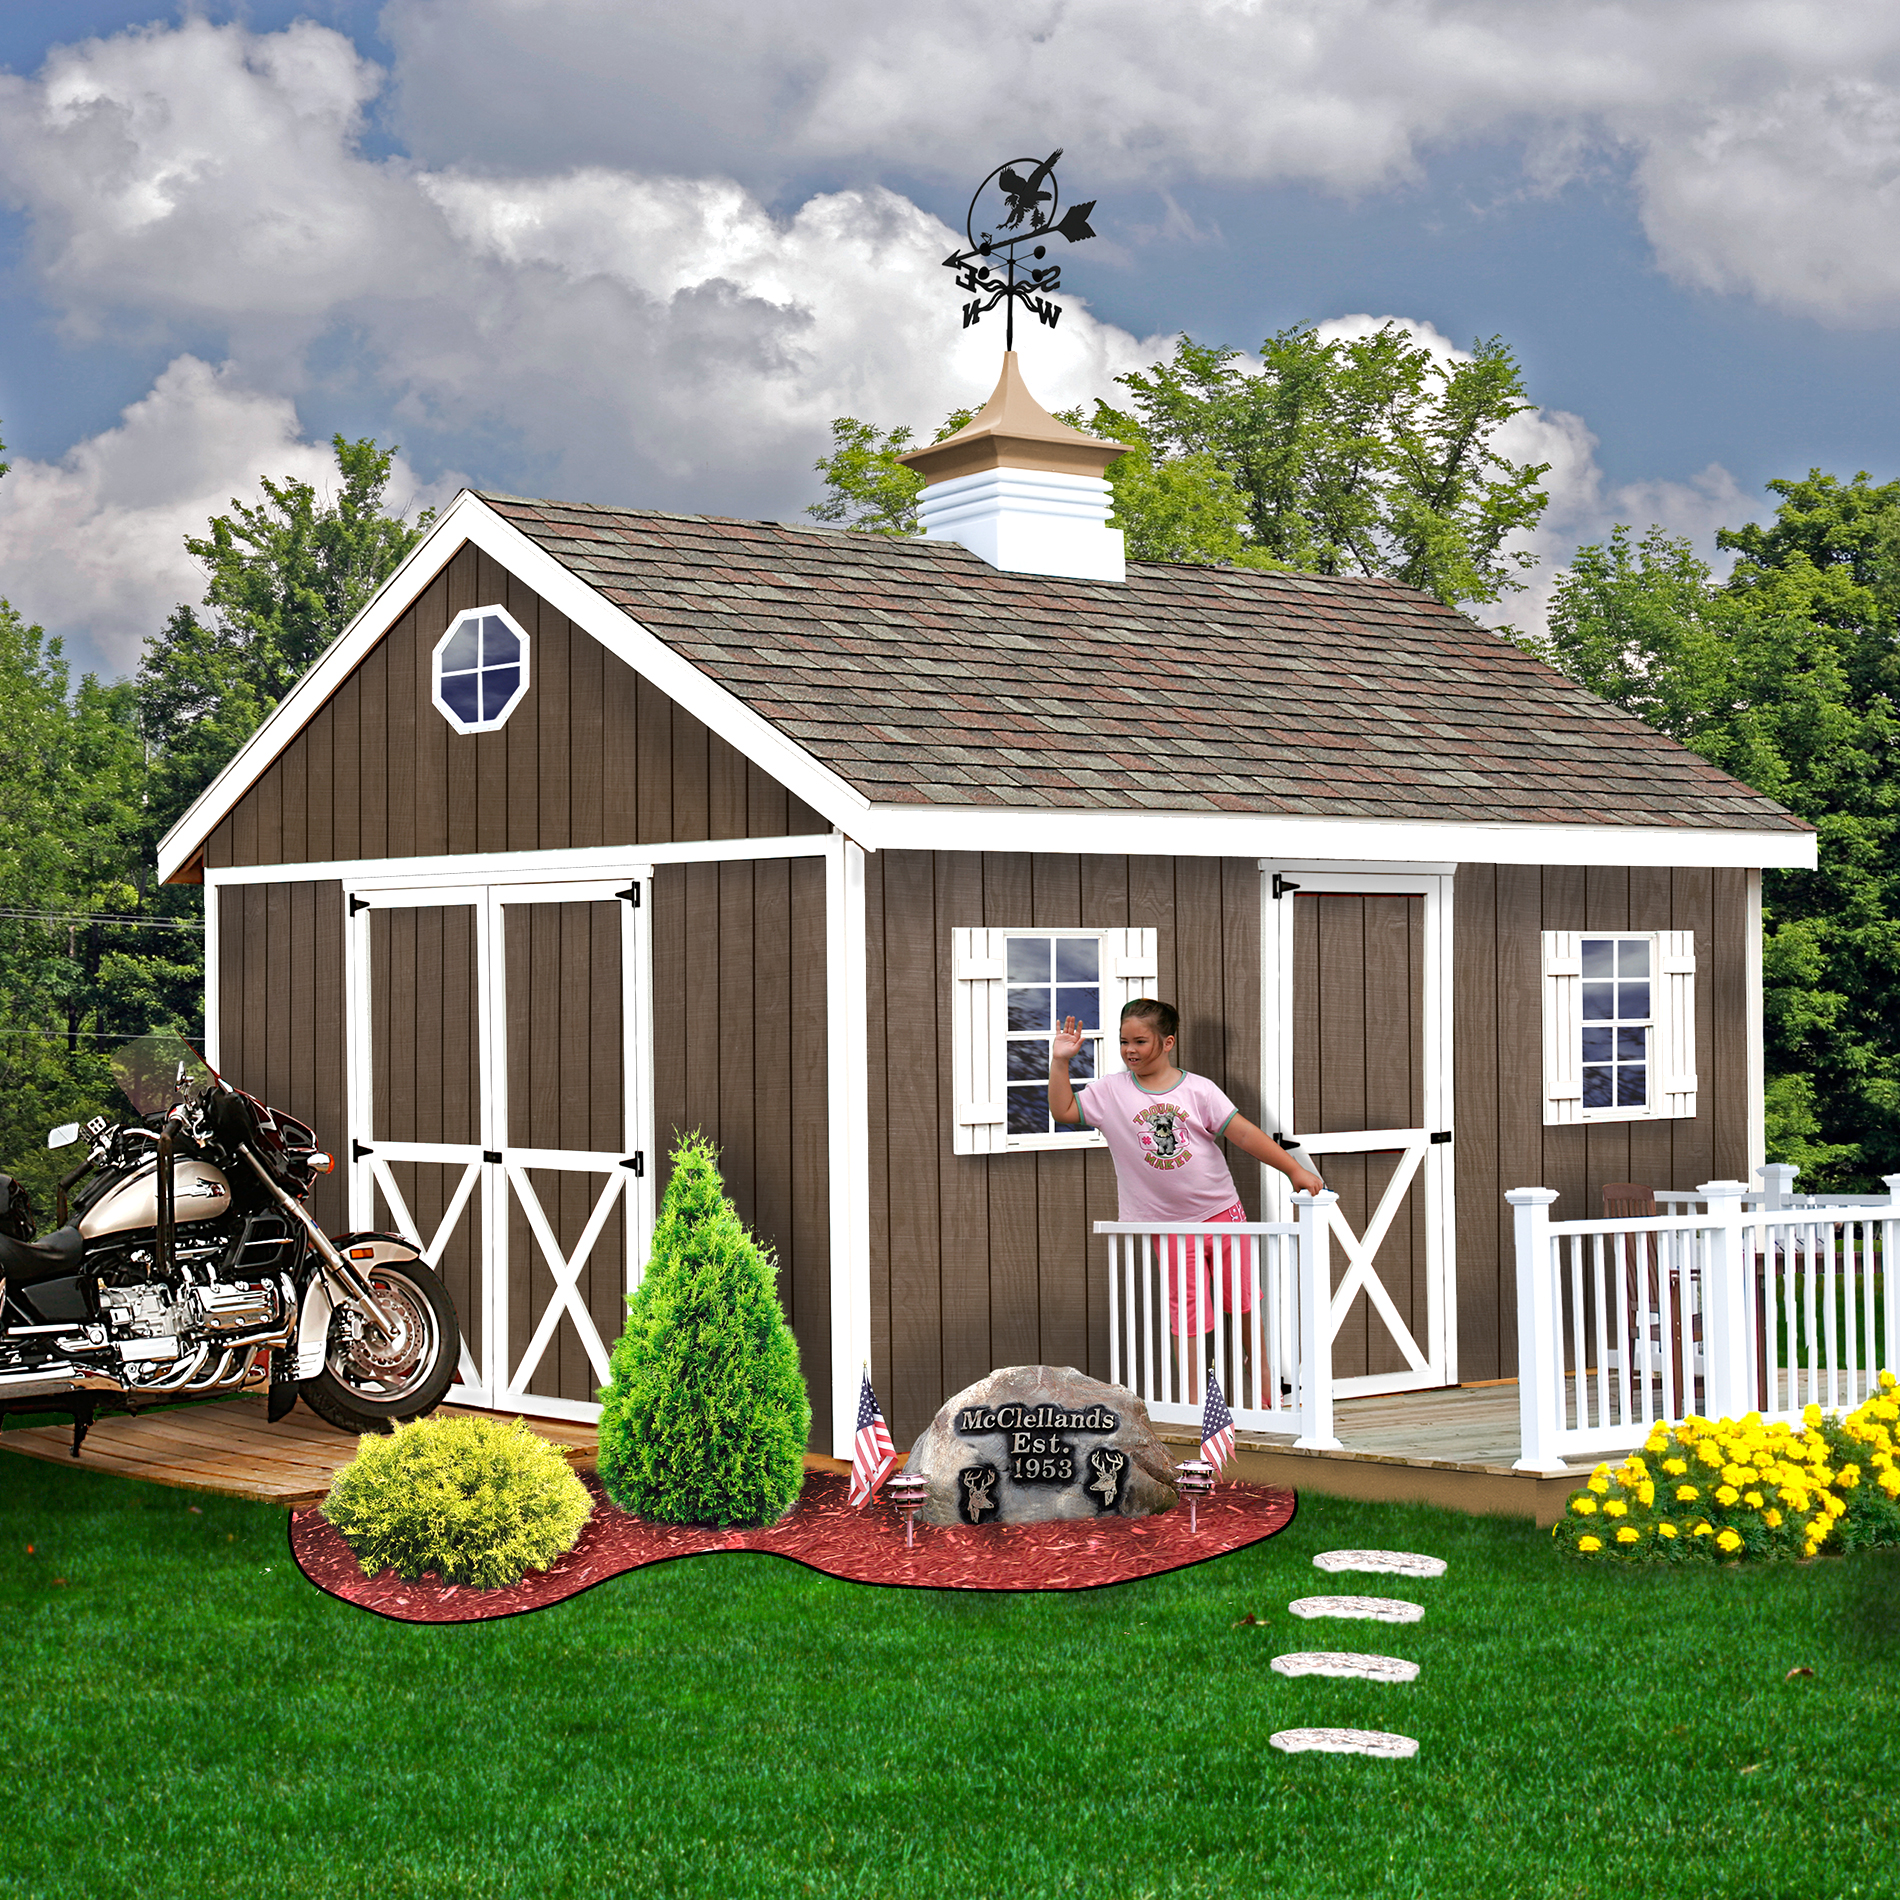 Best barns easton 12x20 shed kit lawn garden sheds for Best small garden sheds